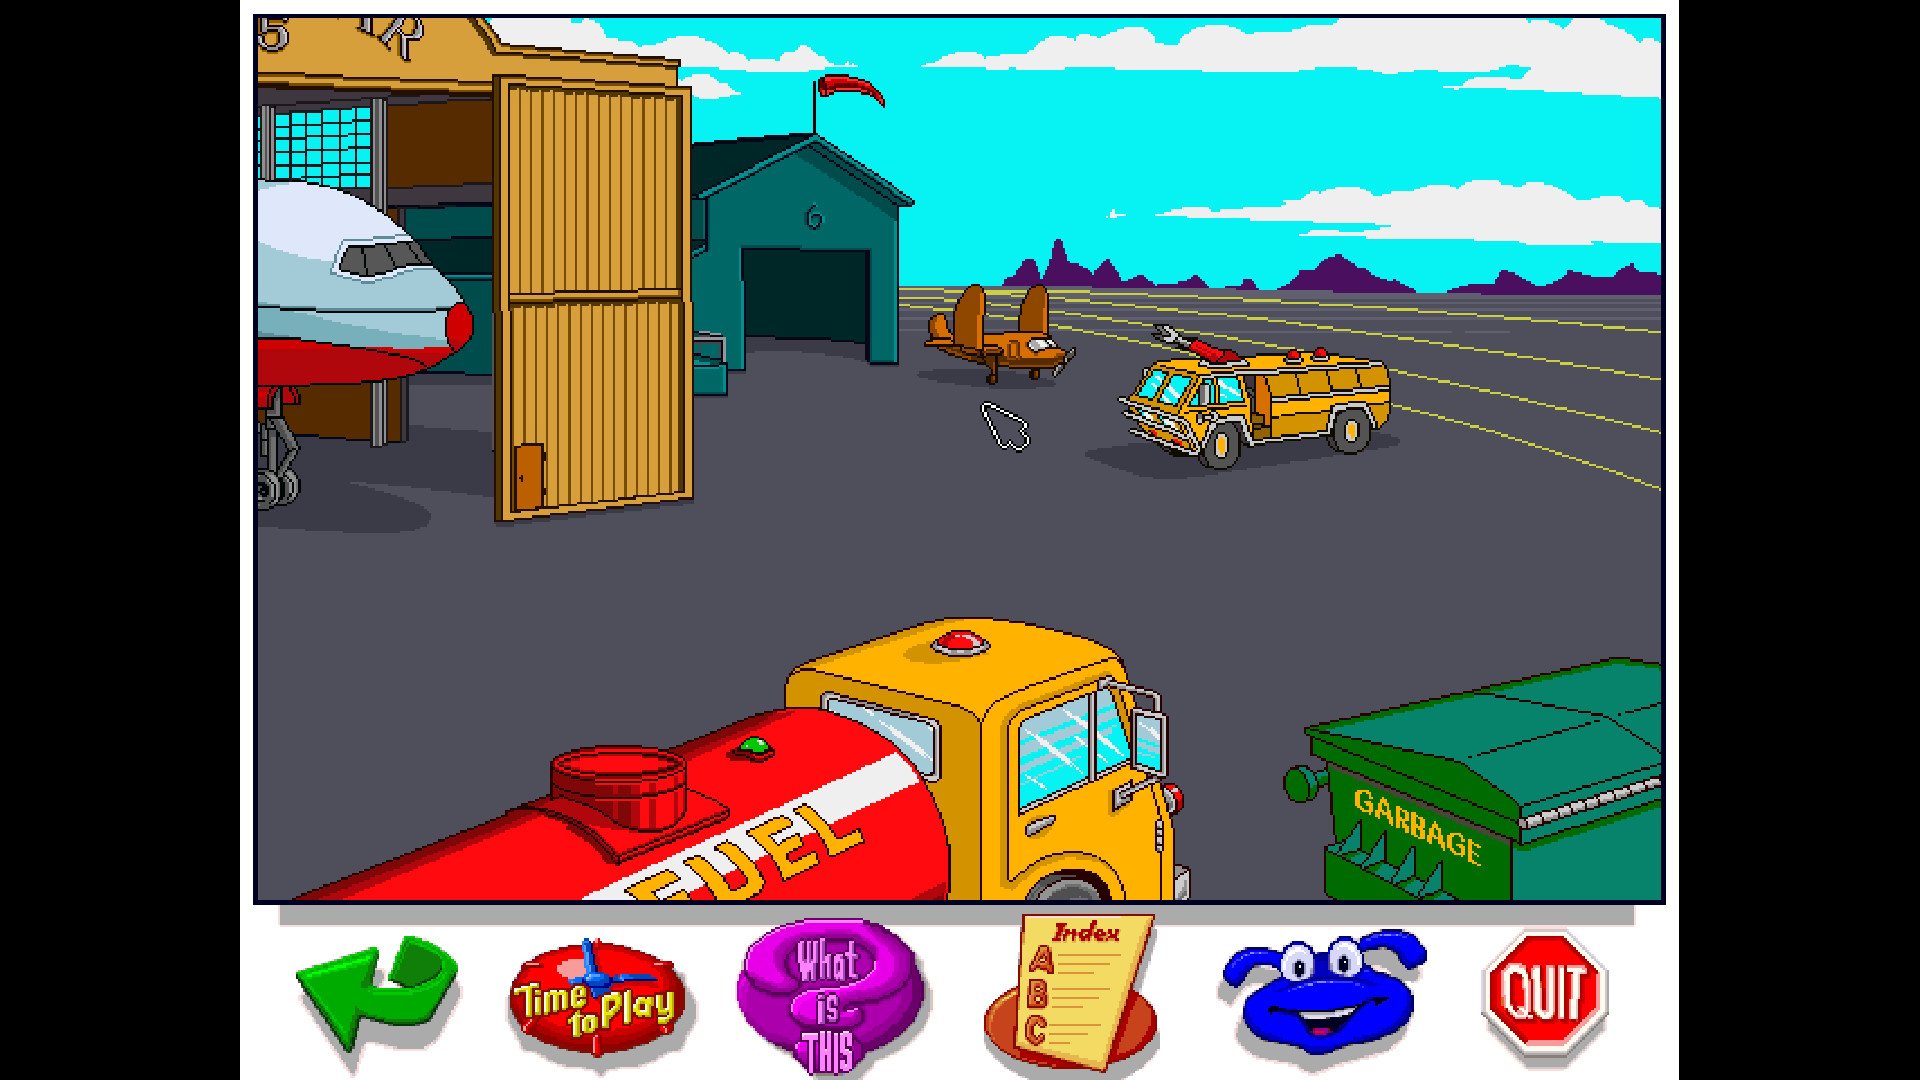 Let's Explore the Airport (Junior Field Trips) screenshot